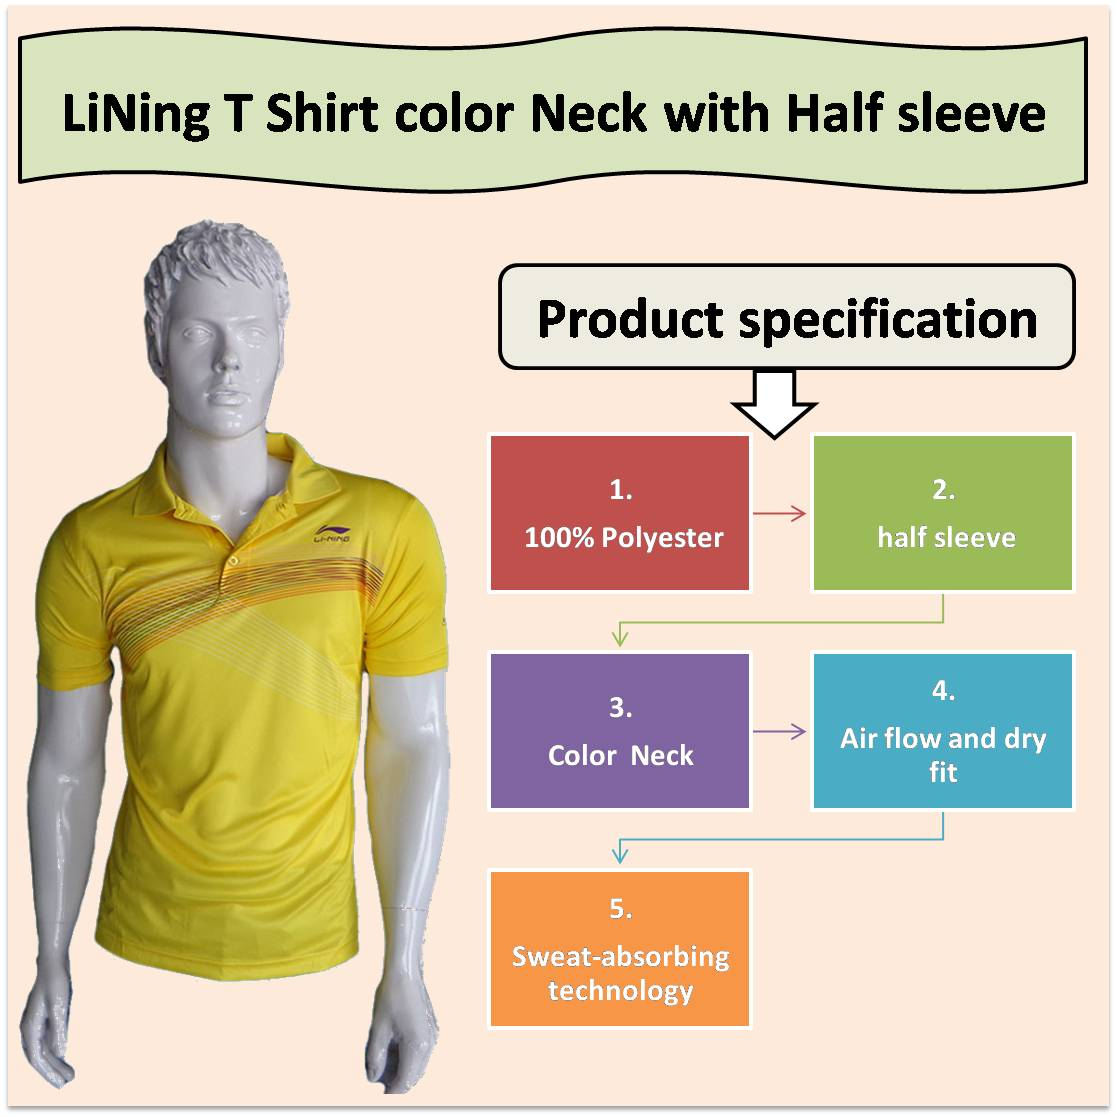 LiNing T Shirt color Neck with Half sleeve Yellow